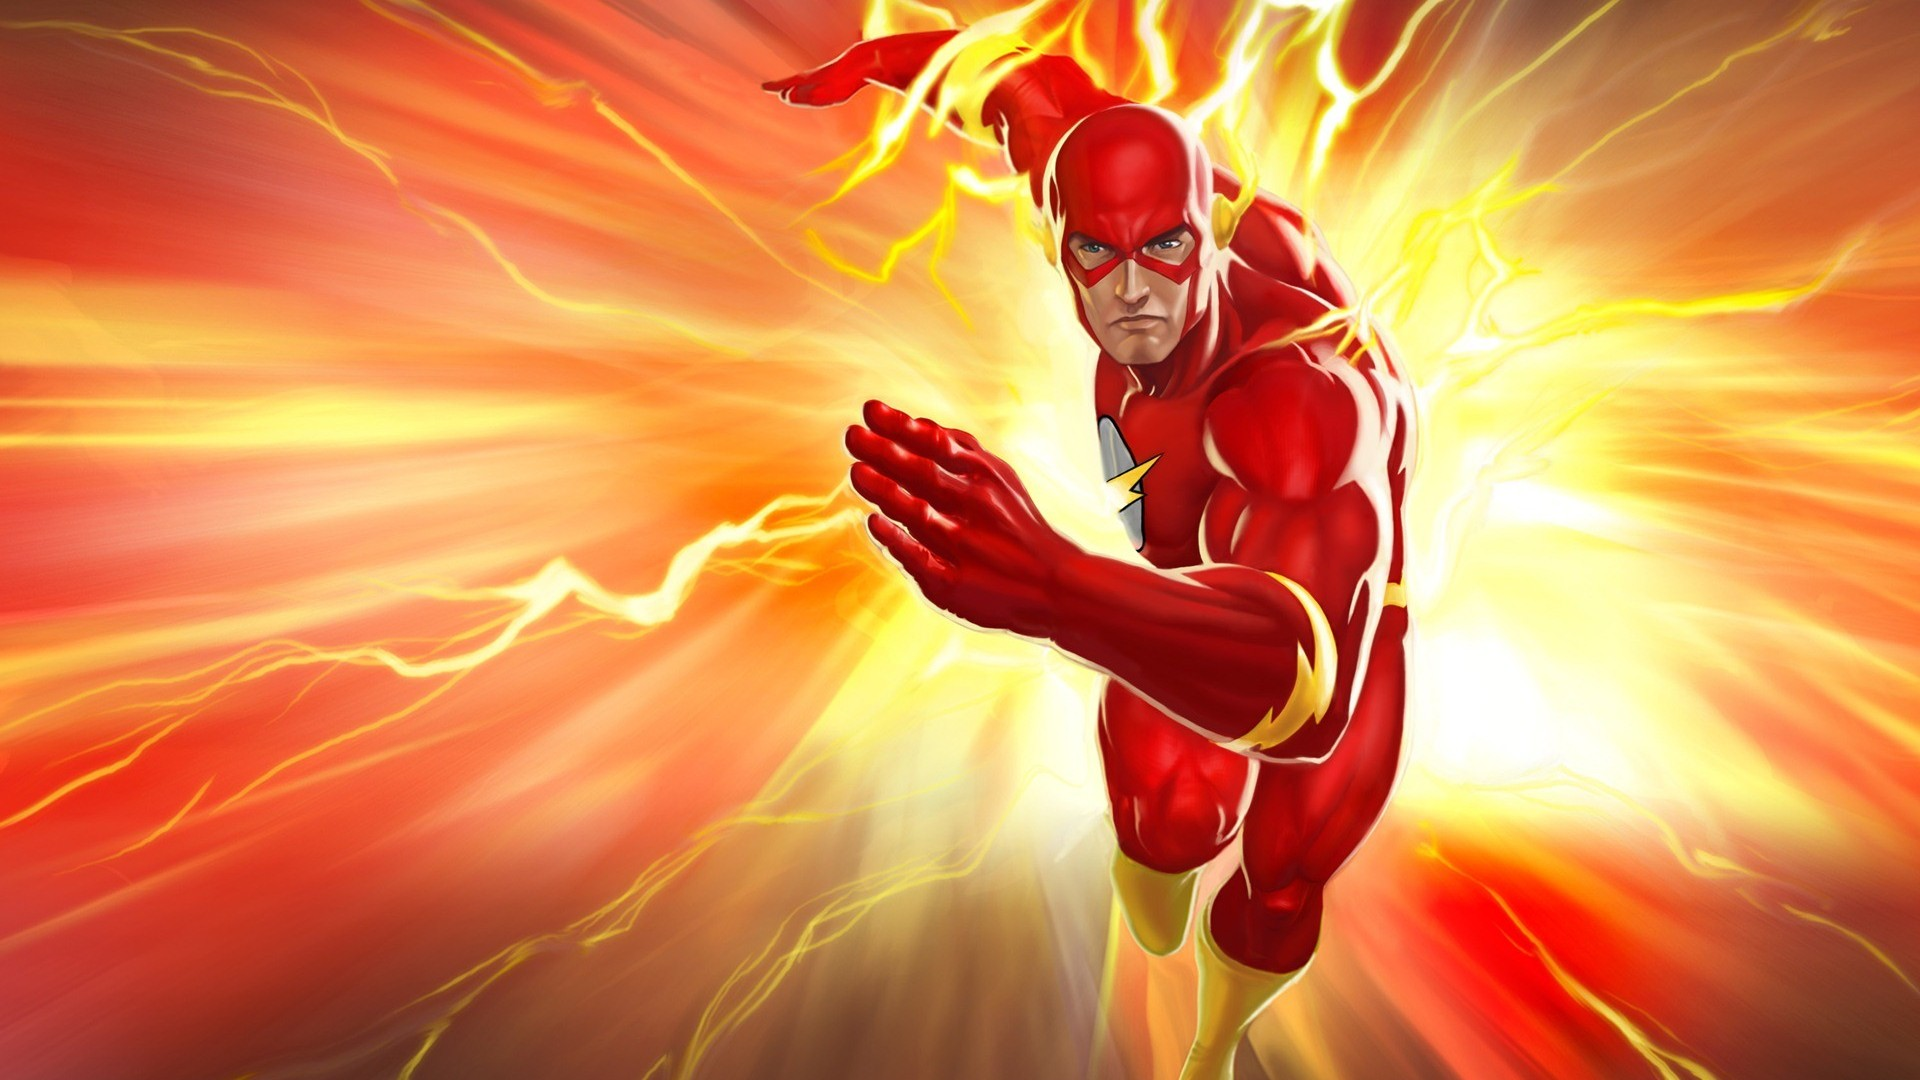 The Flash HD Wallpapers Tv Series 1920x1080